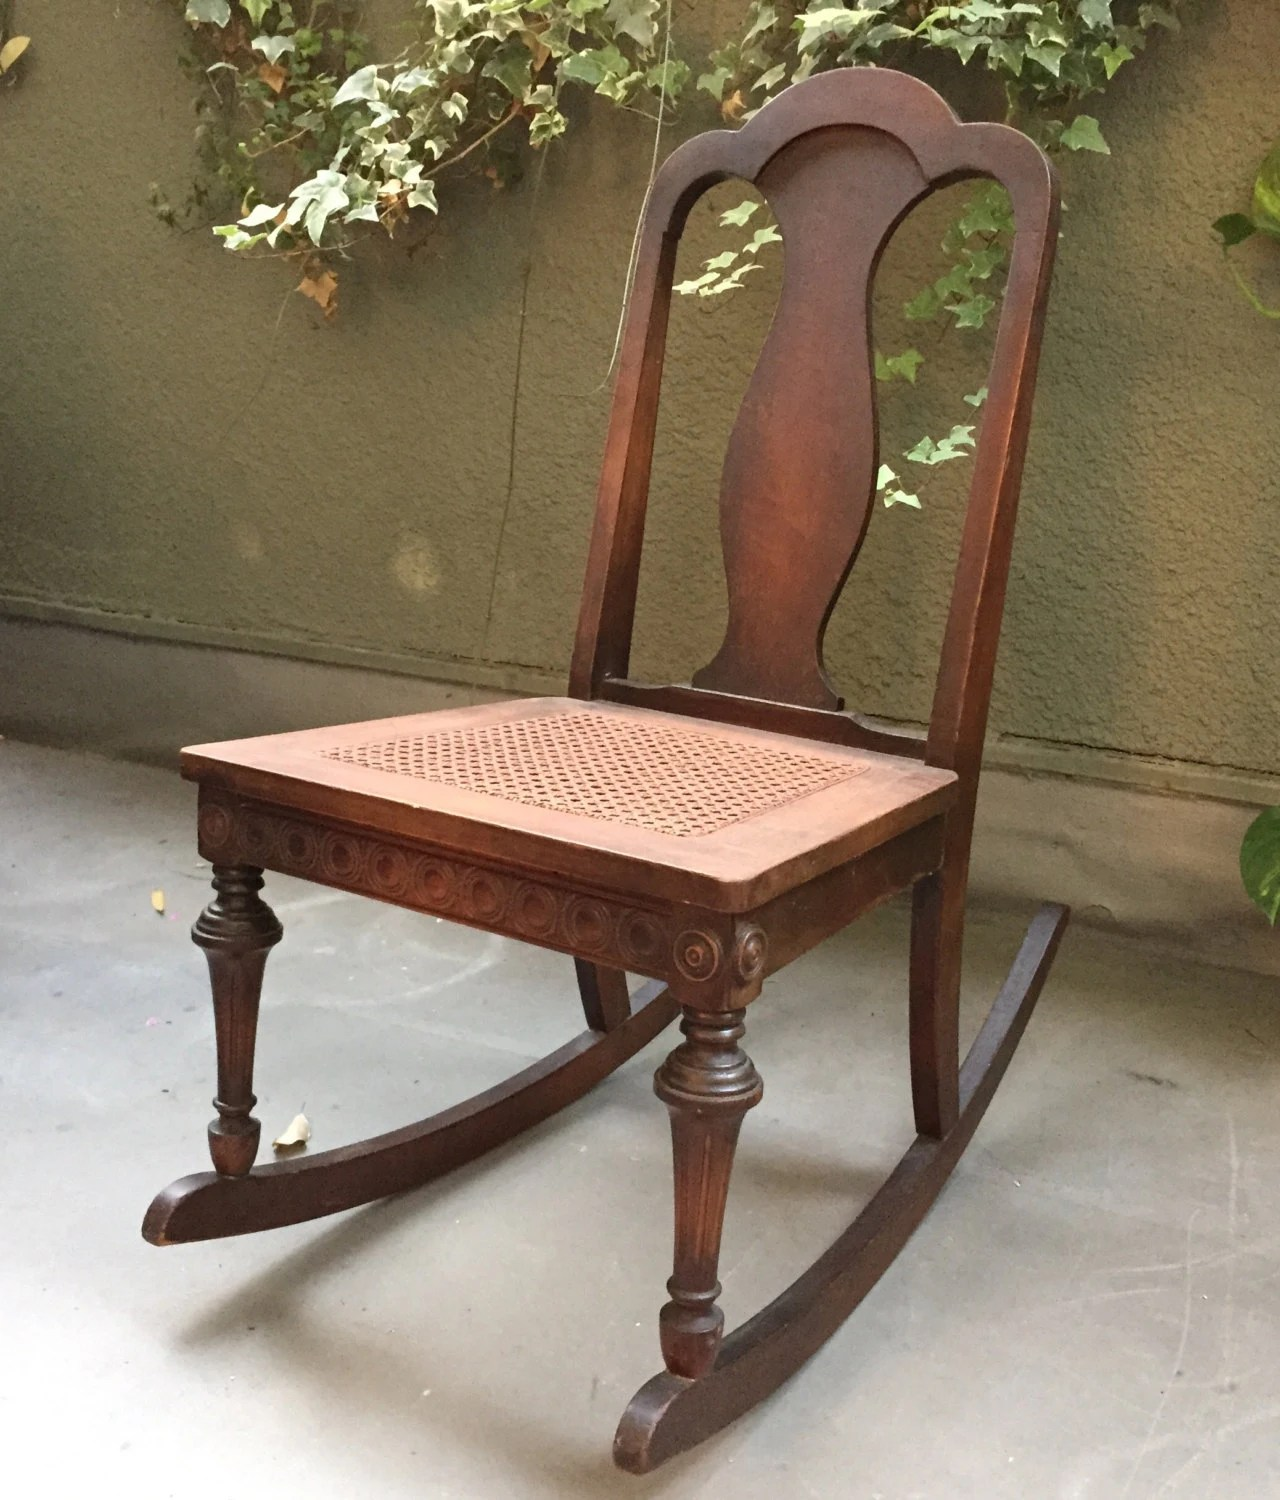 Cane Values Chair Rocking Antique